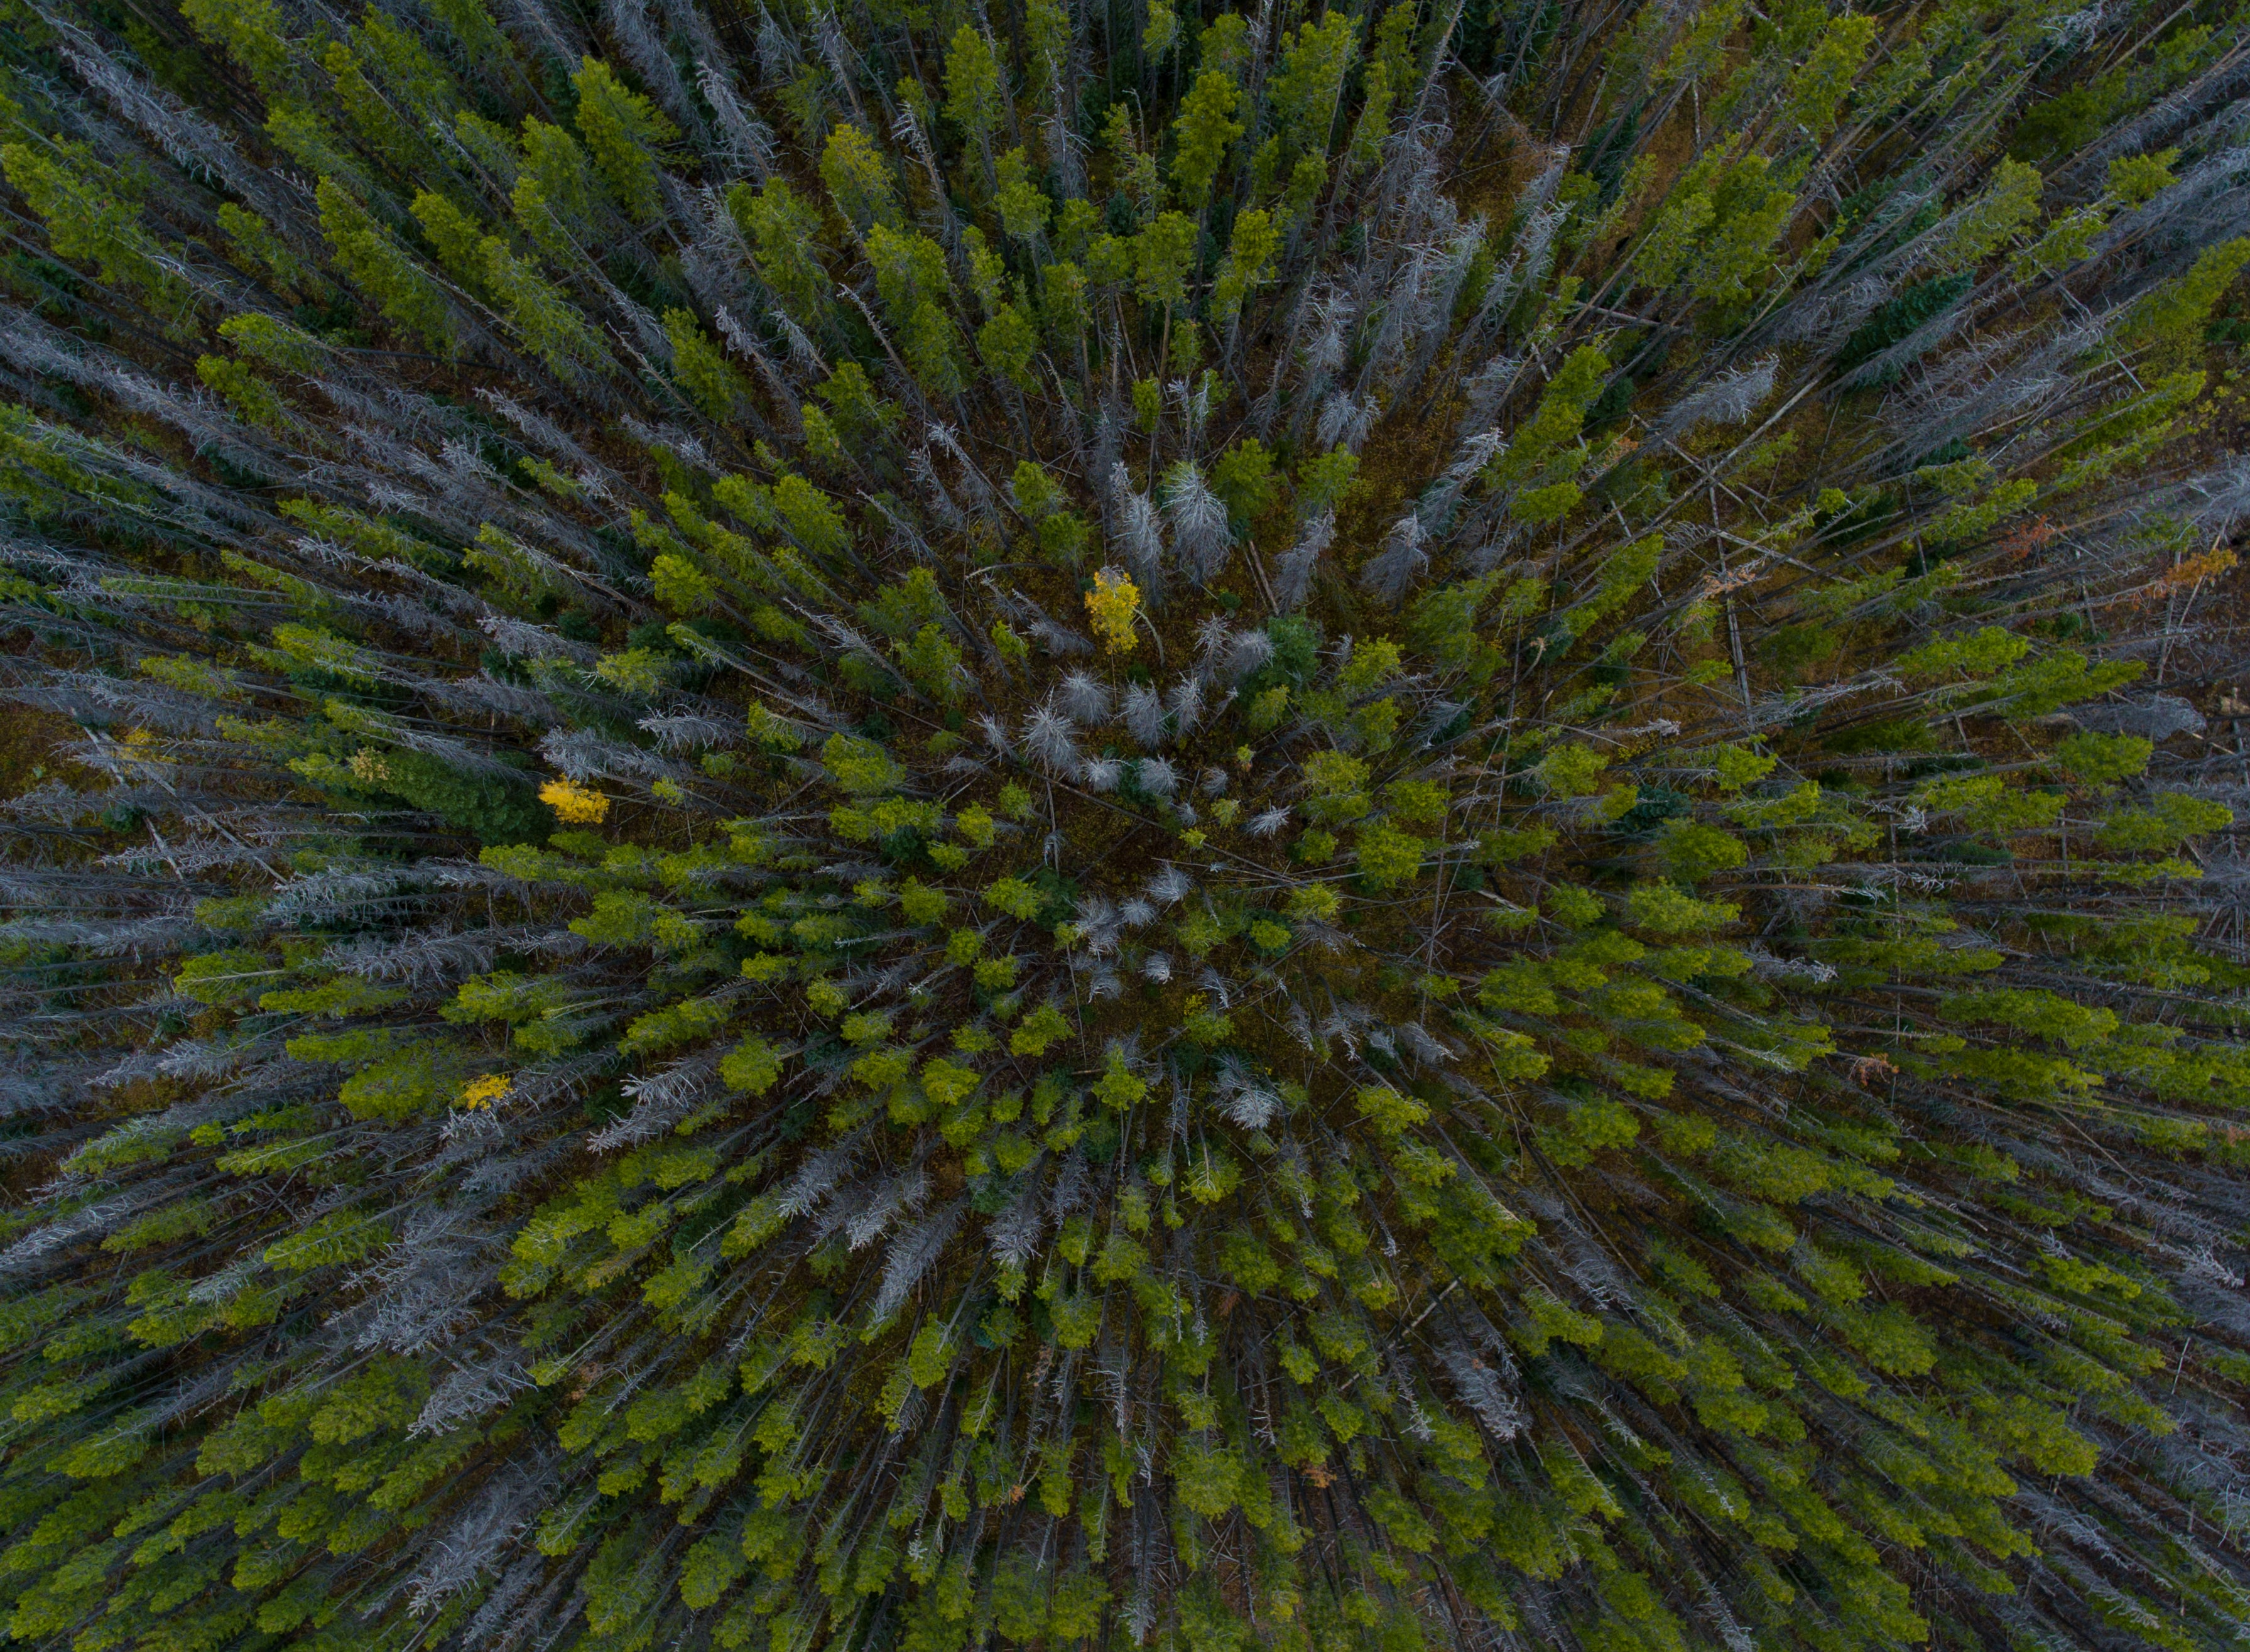 A drone shot of green and gray trees in a forest